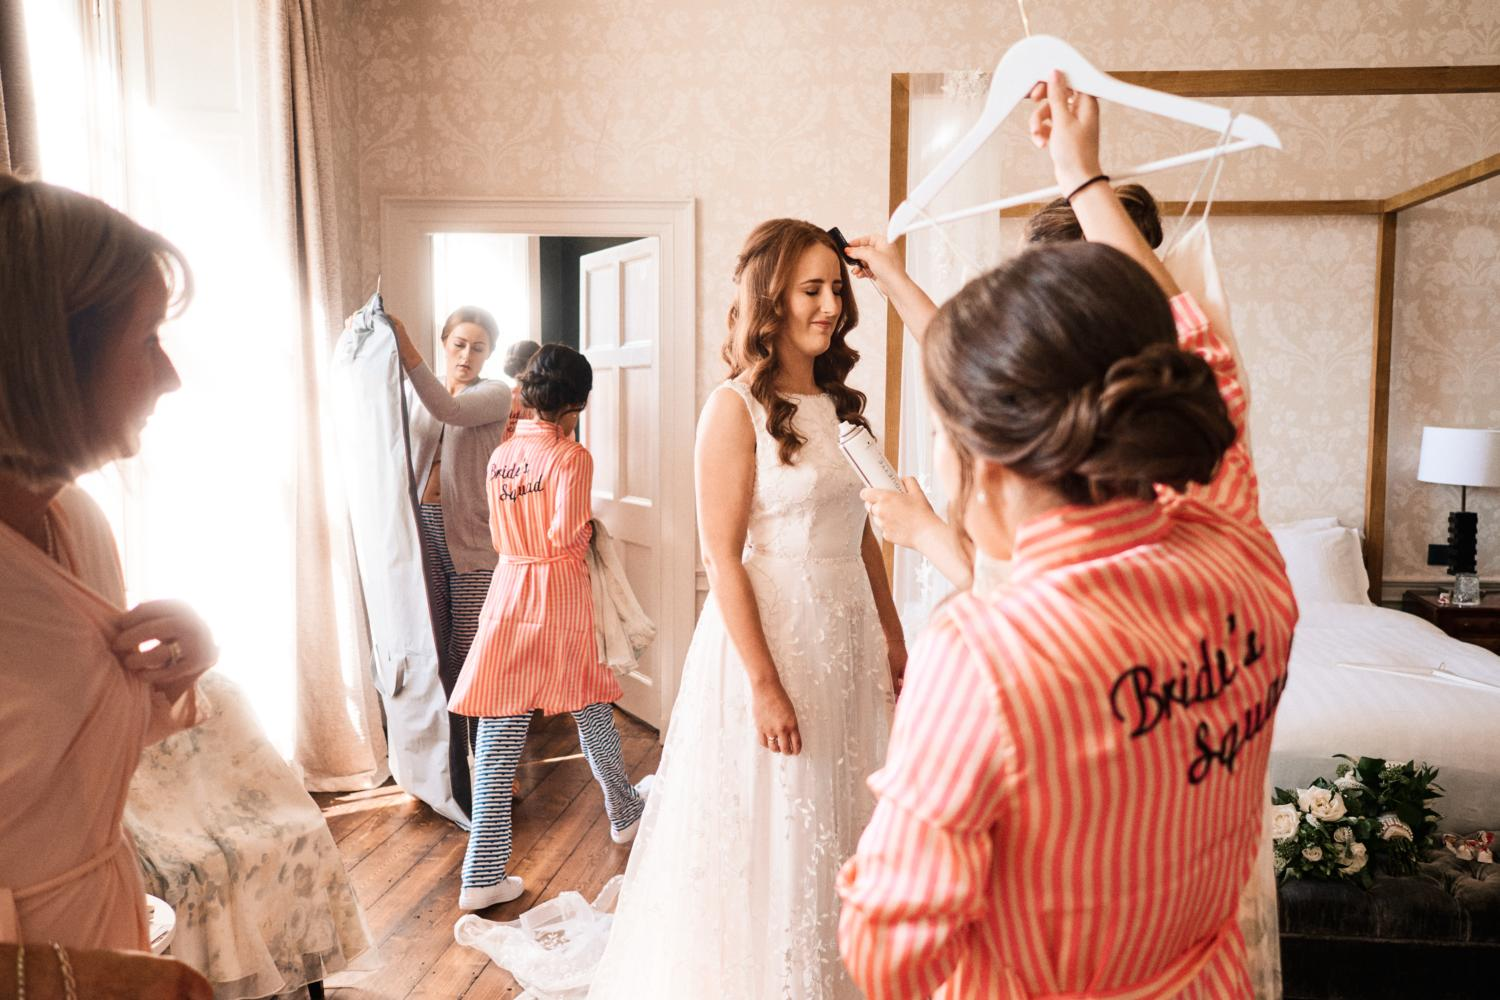 A bride tries on a wedding dress surrounded by her bridal party